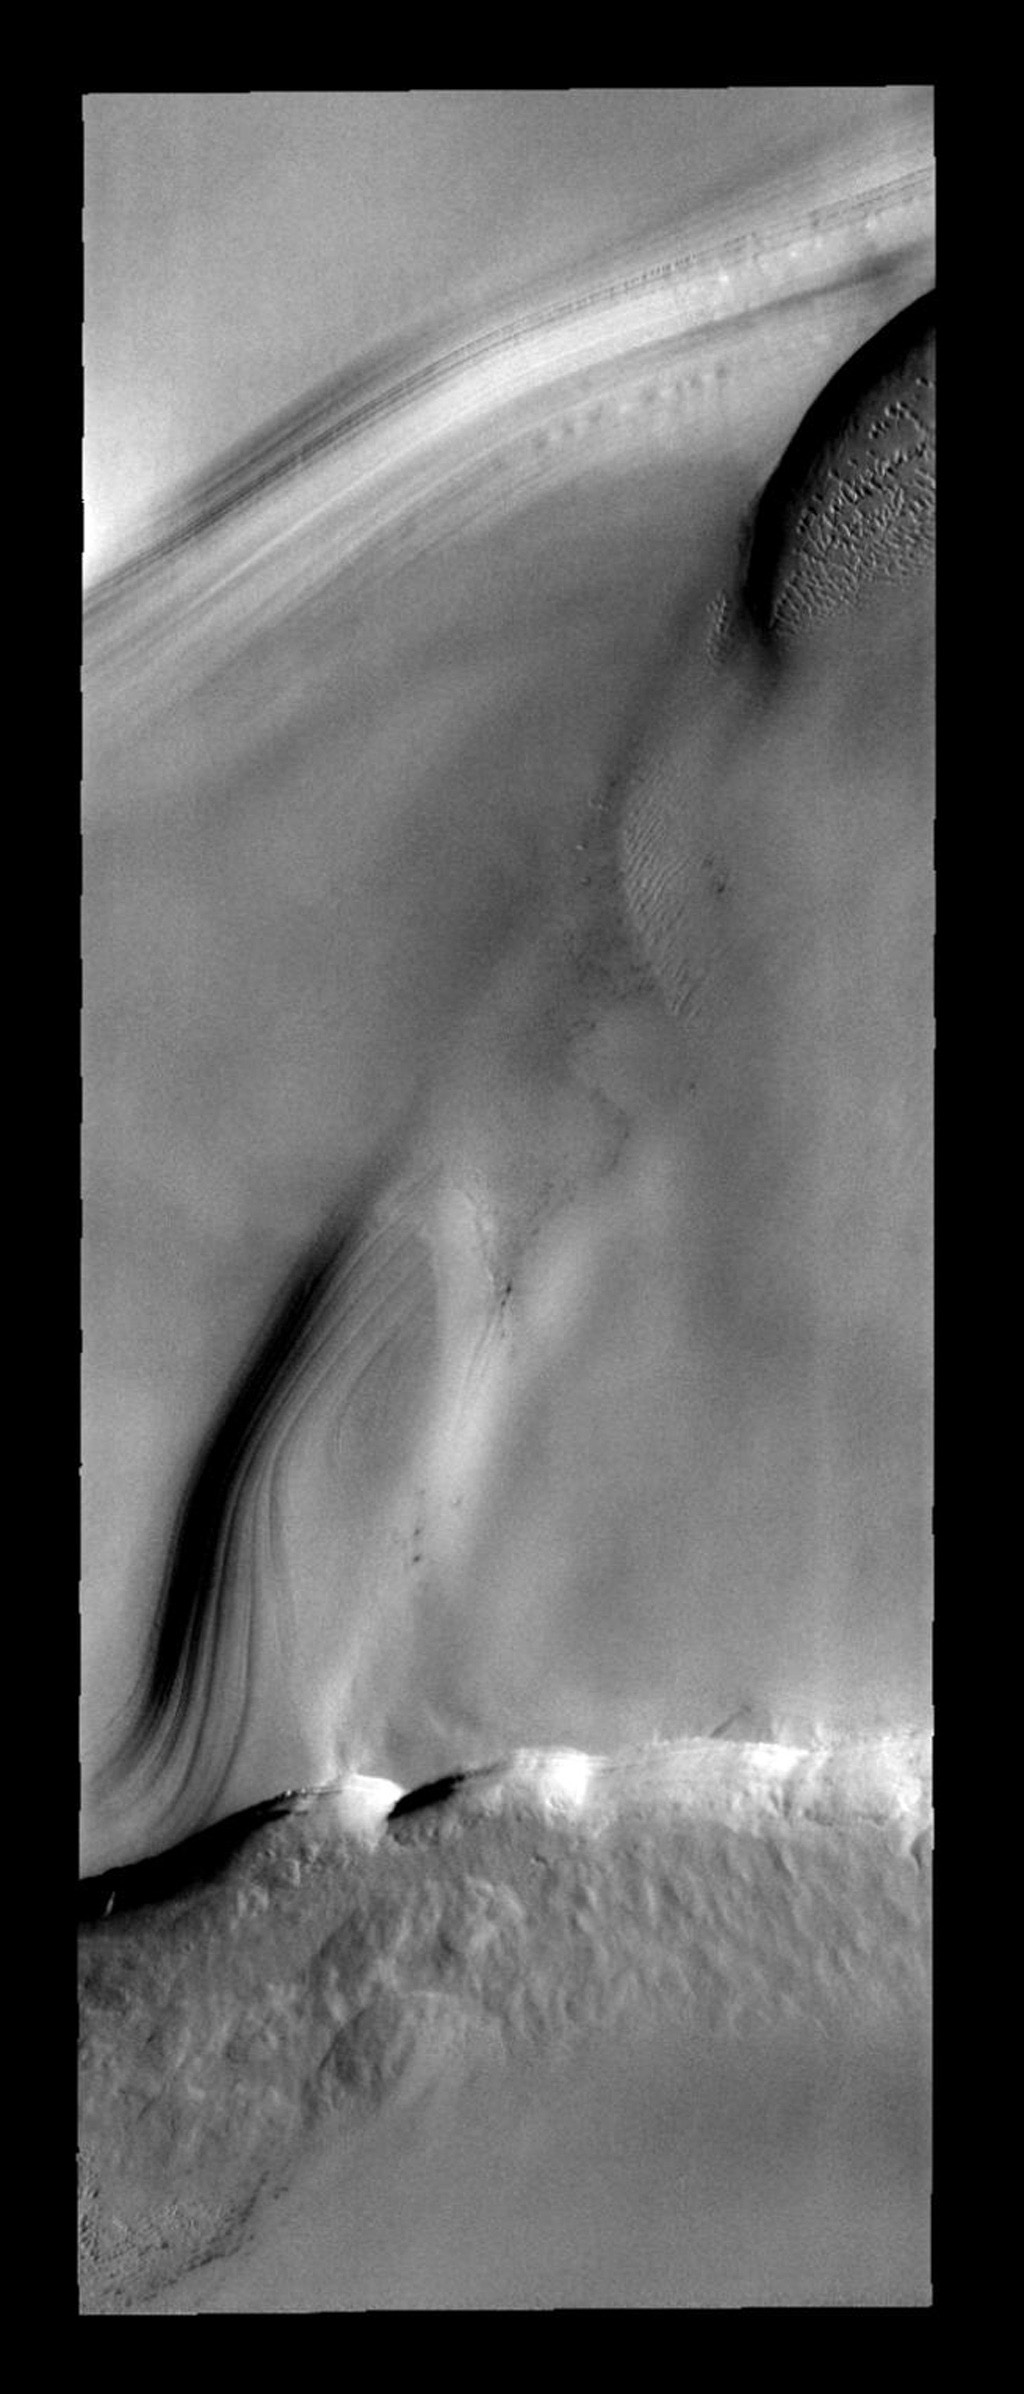 This image of the north polar layered deposits also contains sand dunes on Mars as seen by NASA's Mars Odyssey spacecraft.